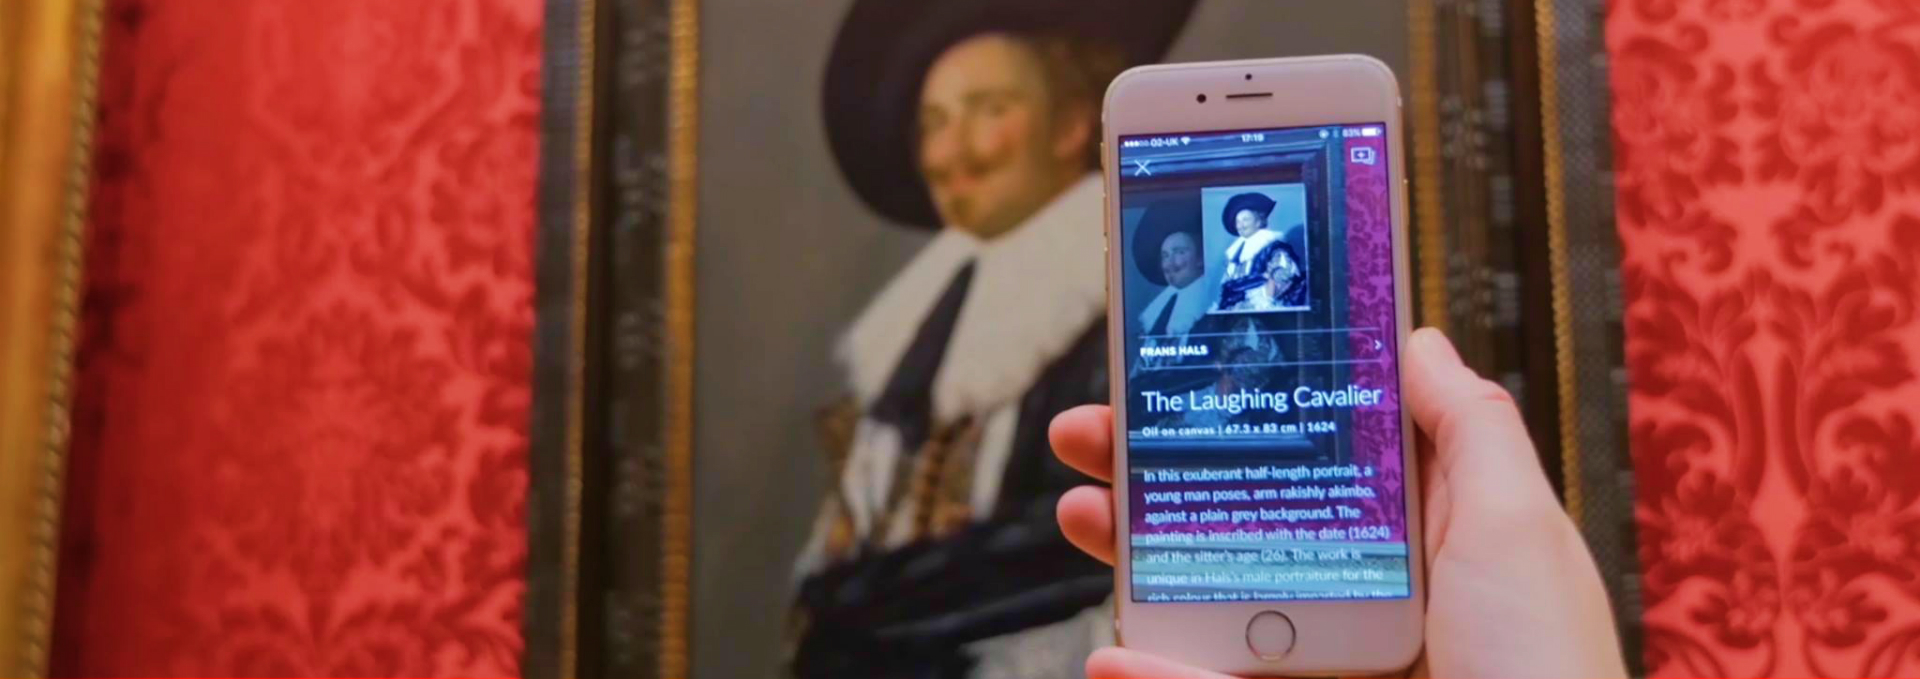 Discover Smartify the App That Works as a Shazam for the Art World ➤ Discover the season's newest design news and inspiration ideas. Visit Daily Design News and subscribe our newsletter! #dailydesignnews #designnews #Smartify #ContemporaryArt